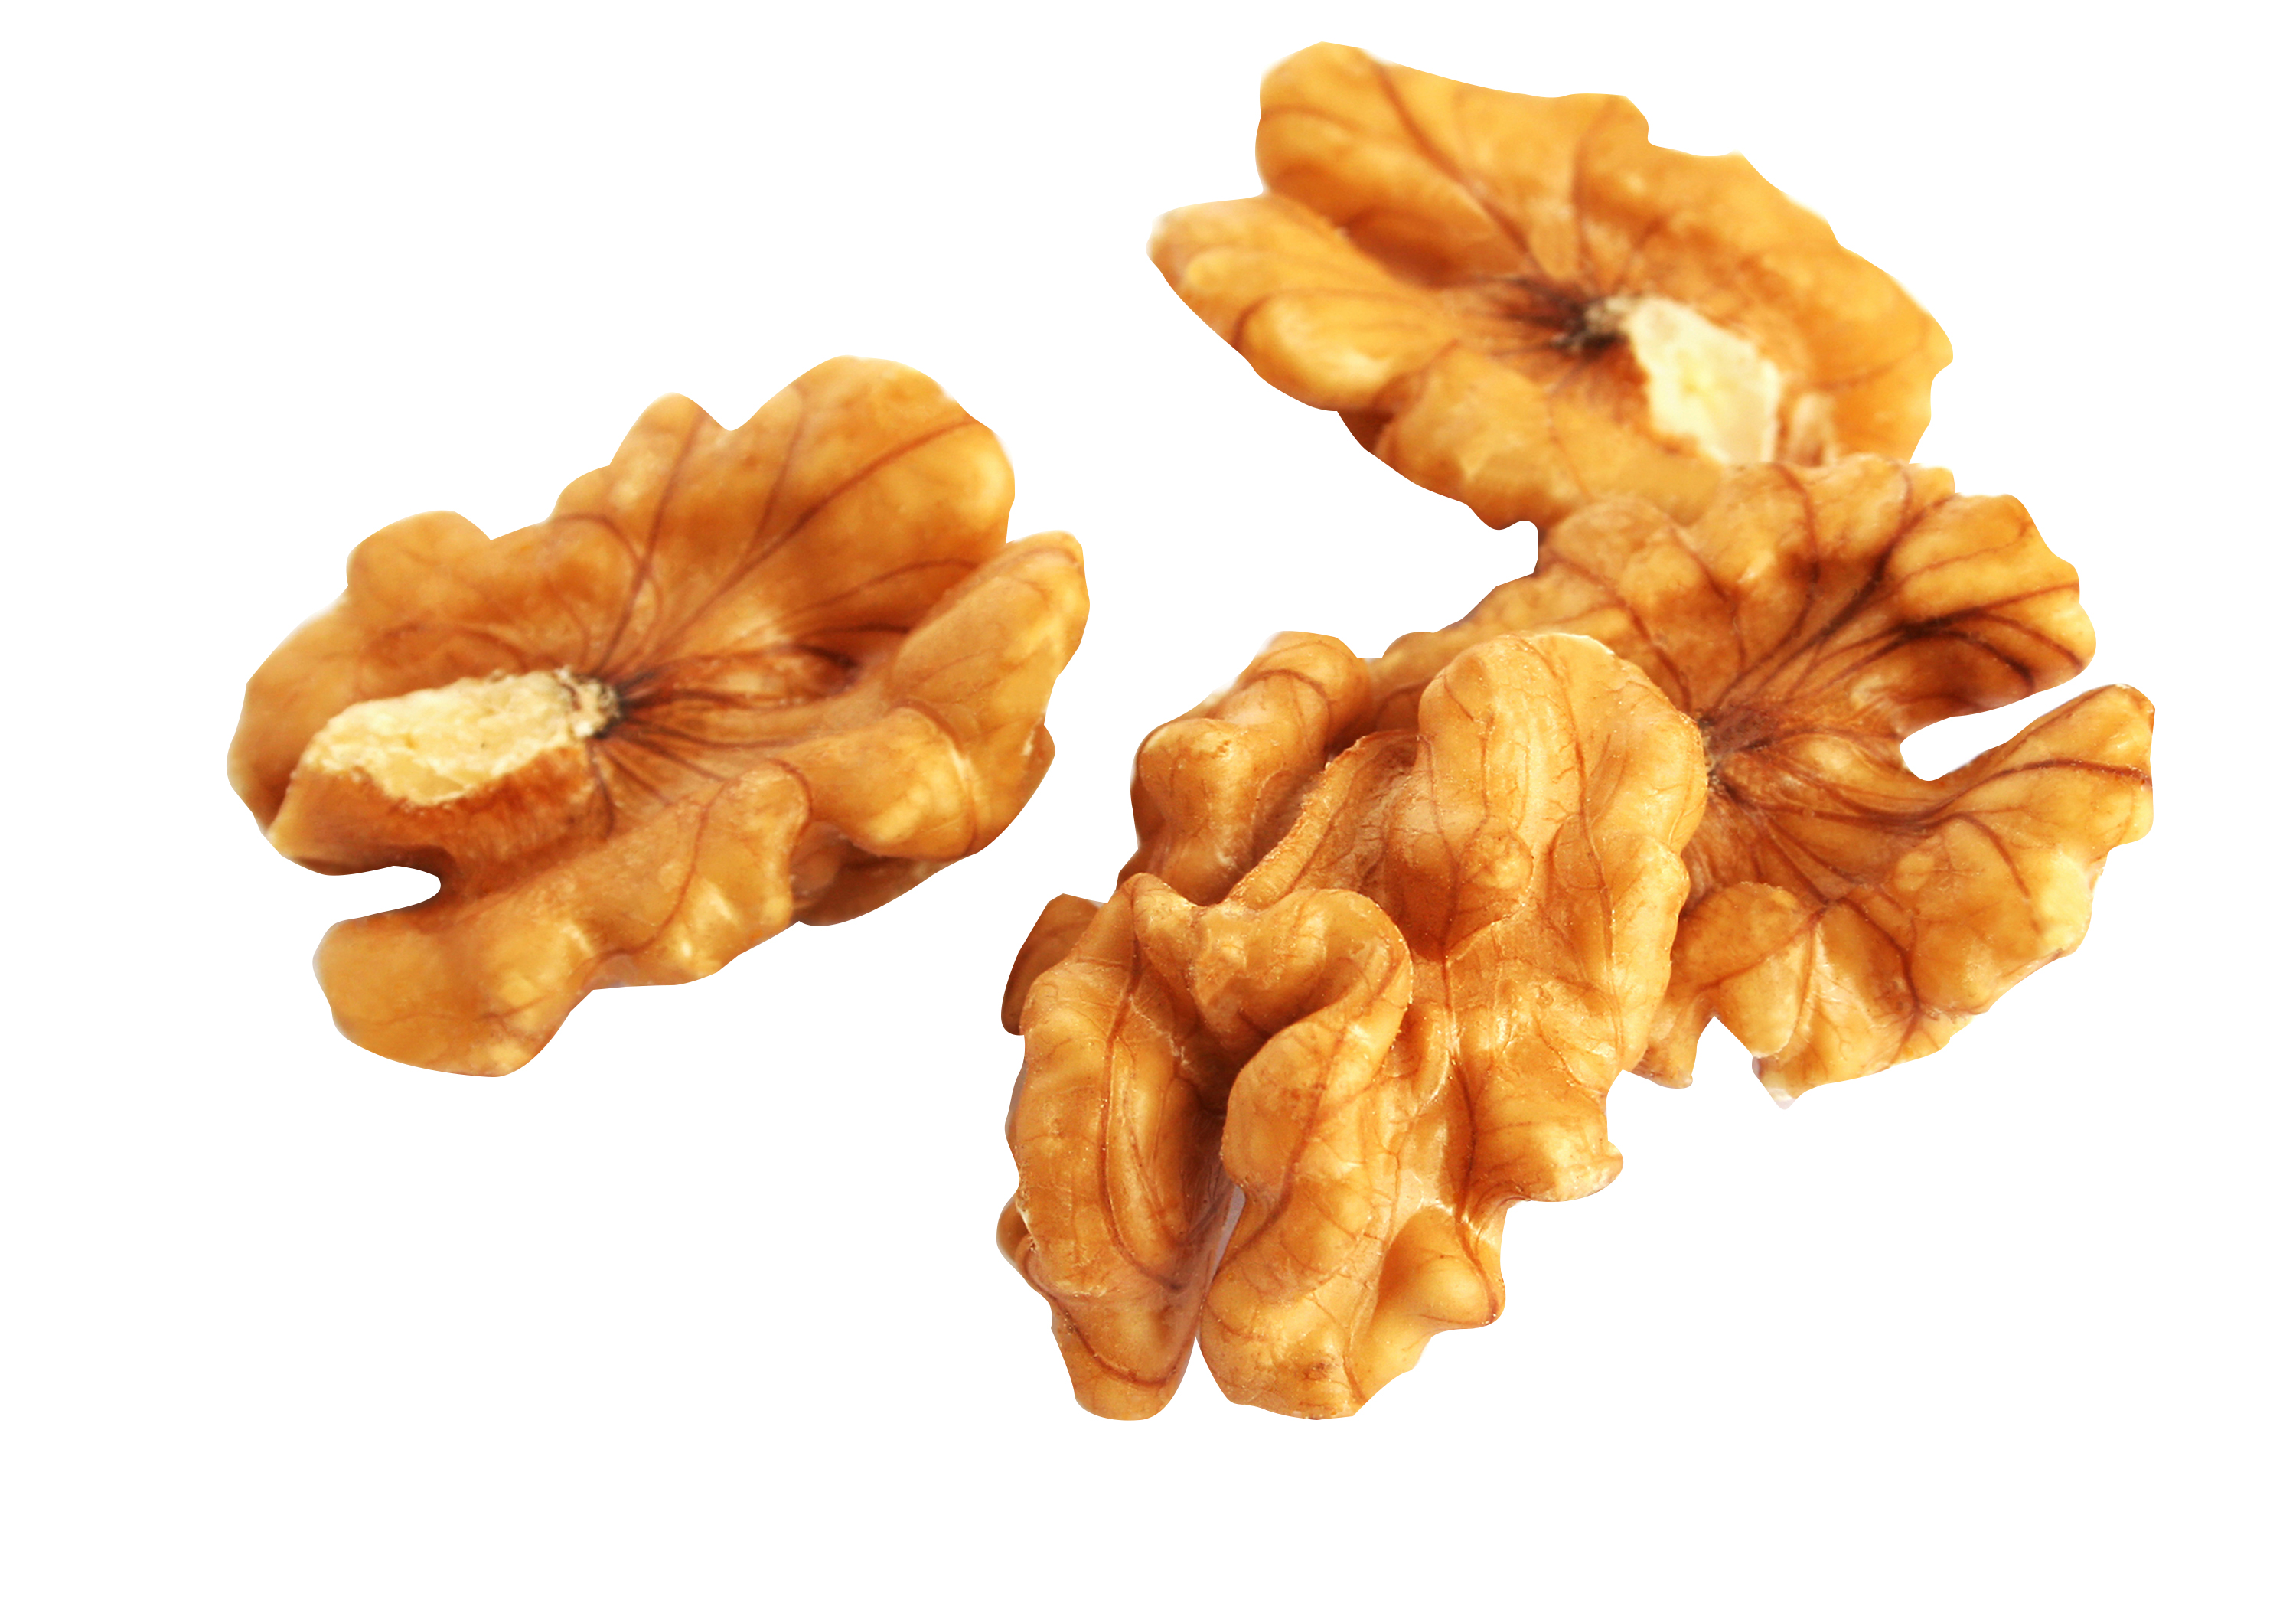 Walnuts are essential to any yummy trail mix